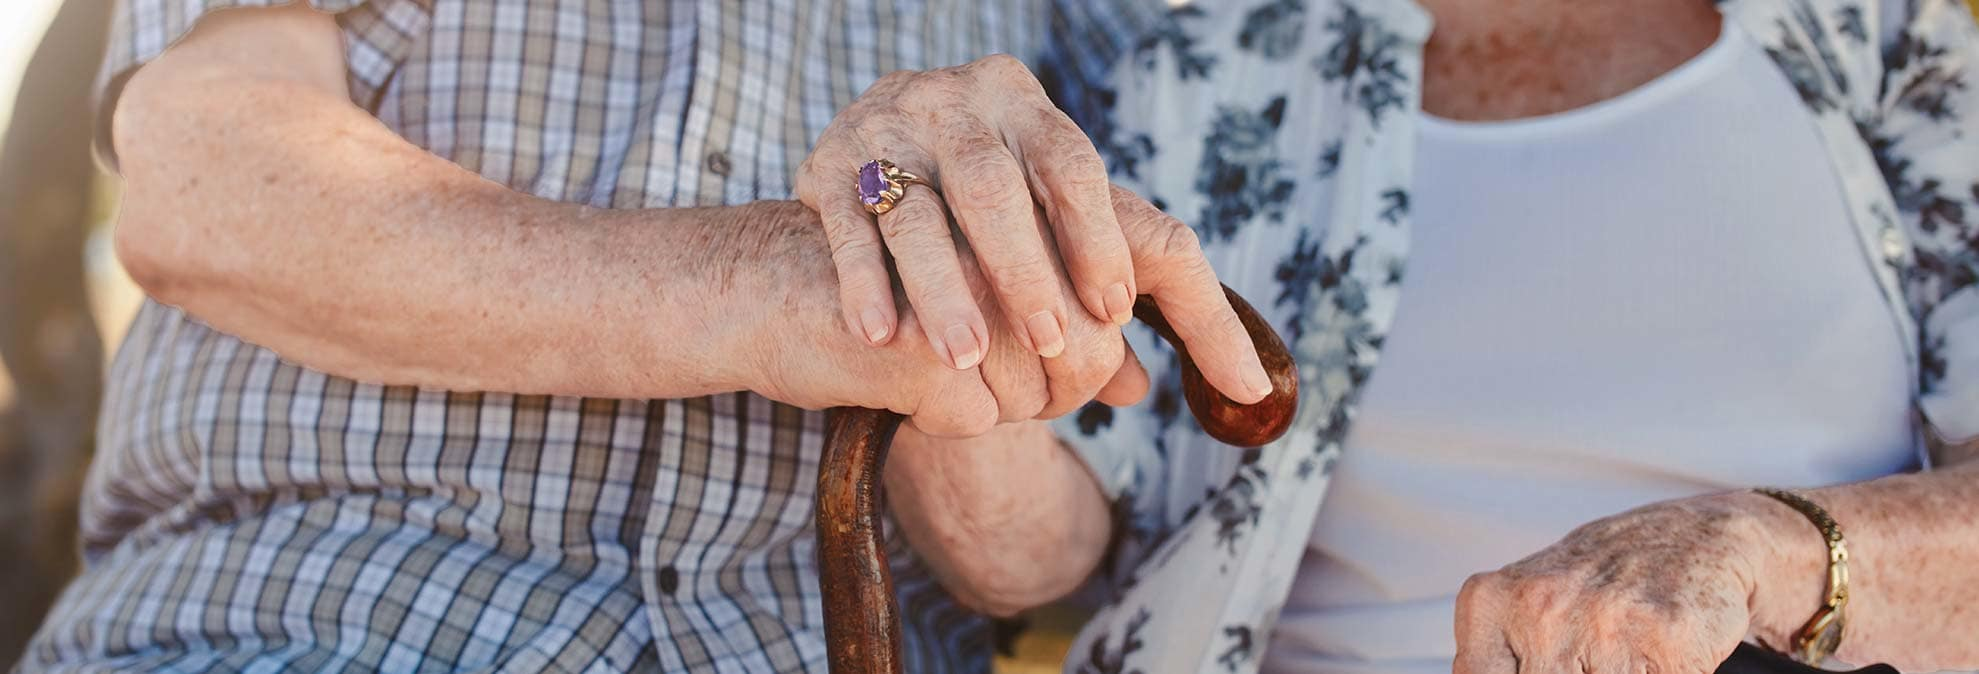 Elder Care and Assisted Living: Who Will Care for You?